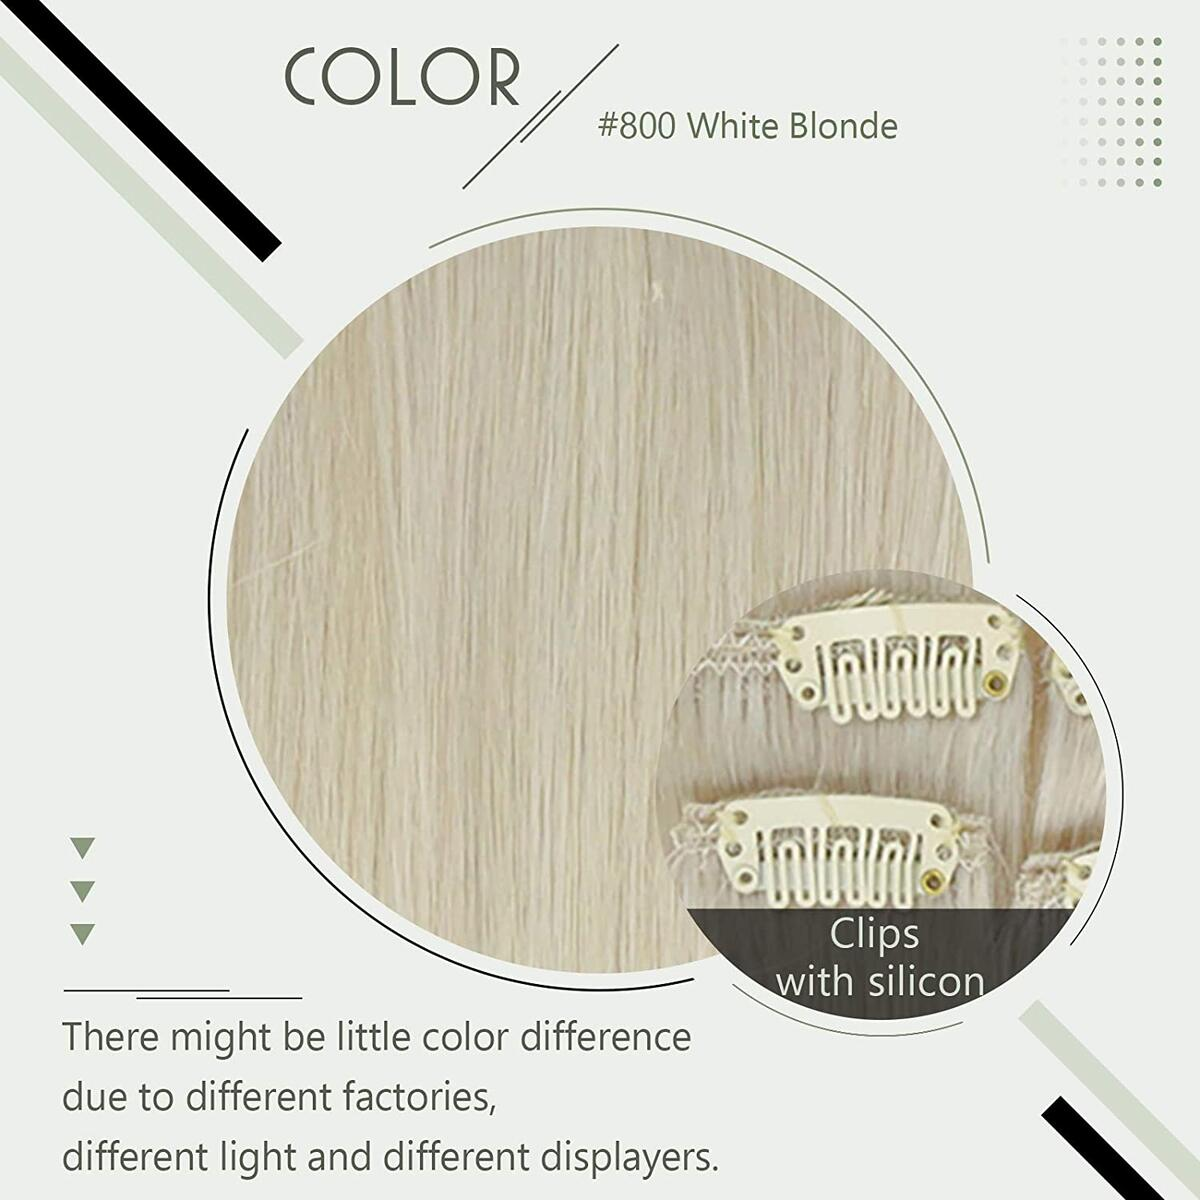 RUNATURE Clip in Hair Extensions Color 800 White Blonde 12 Inch Human Hair 9 Pieces 100g